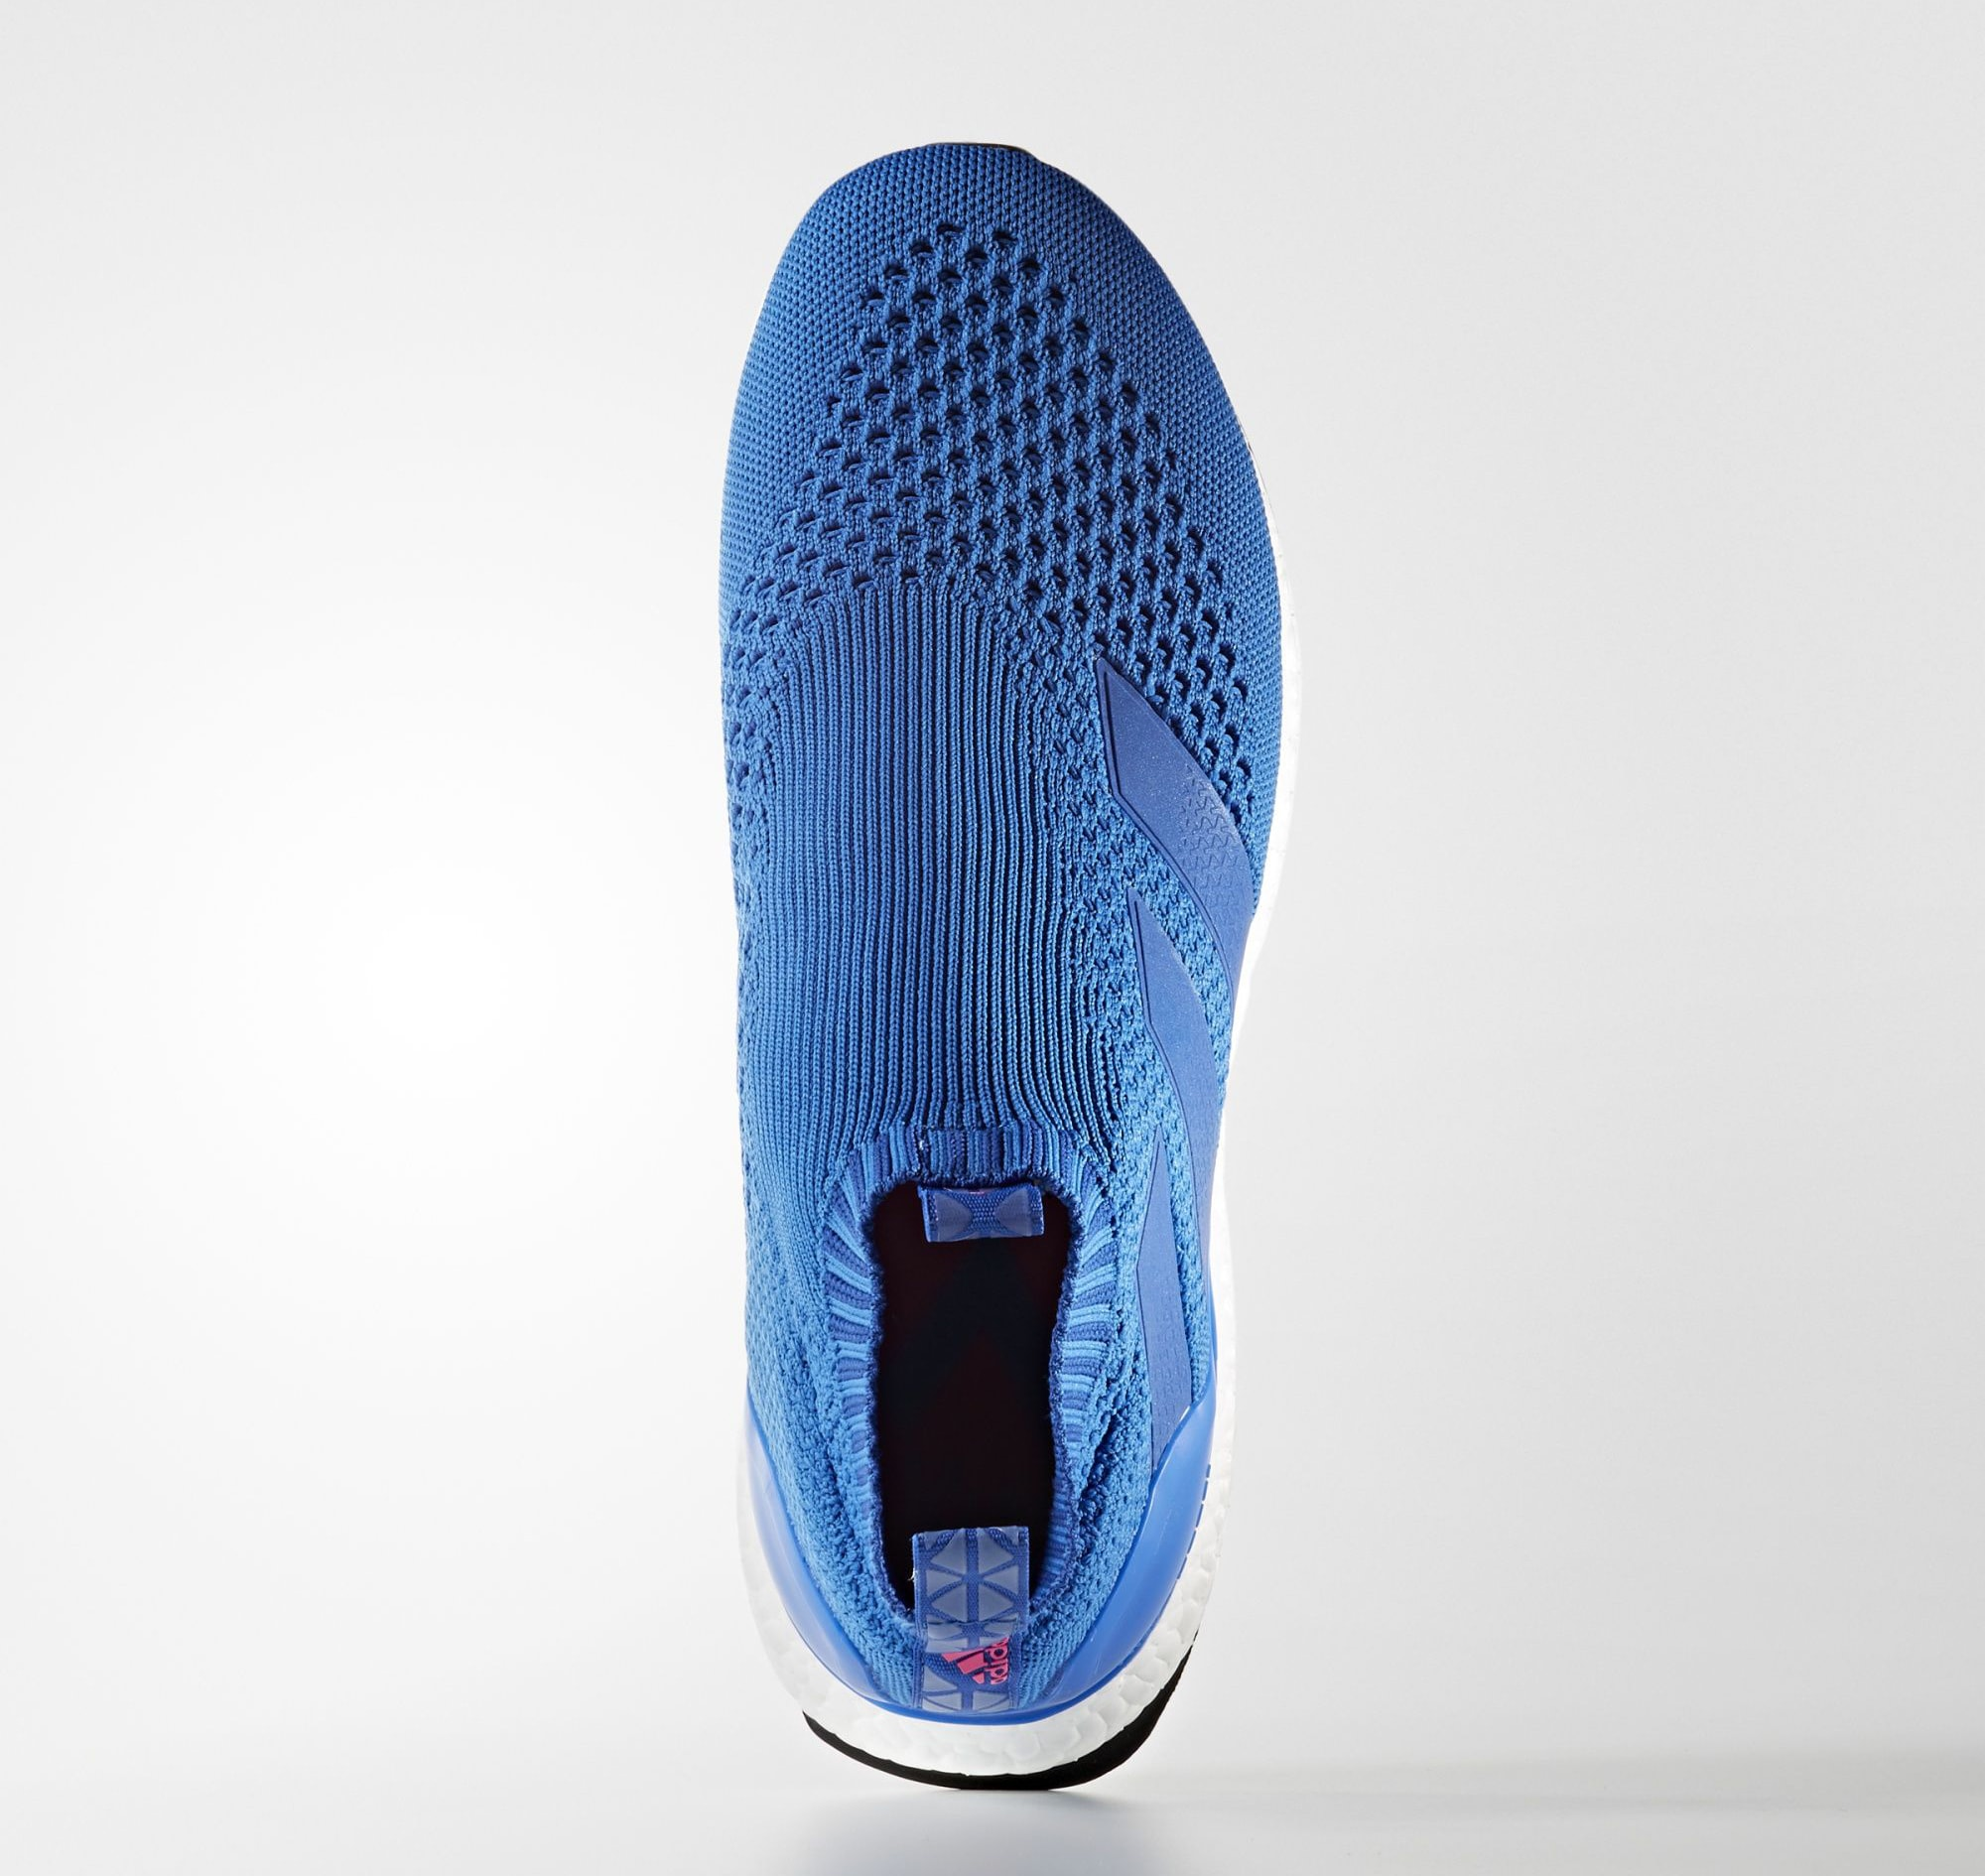 Adidas Ace 16 Pure Control Ultra Boost BY9090 Blue Pink Top